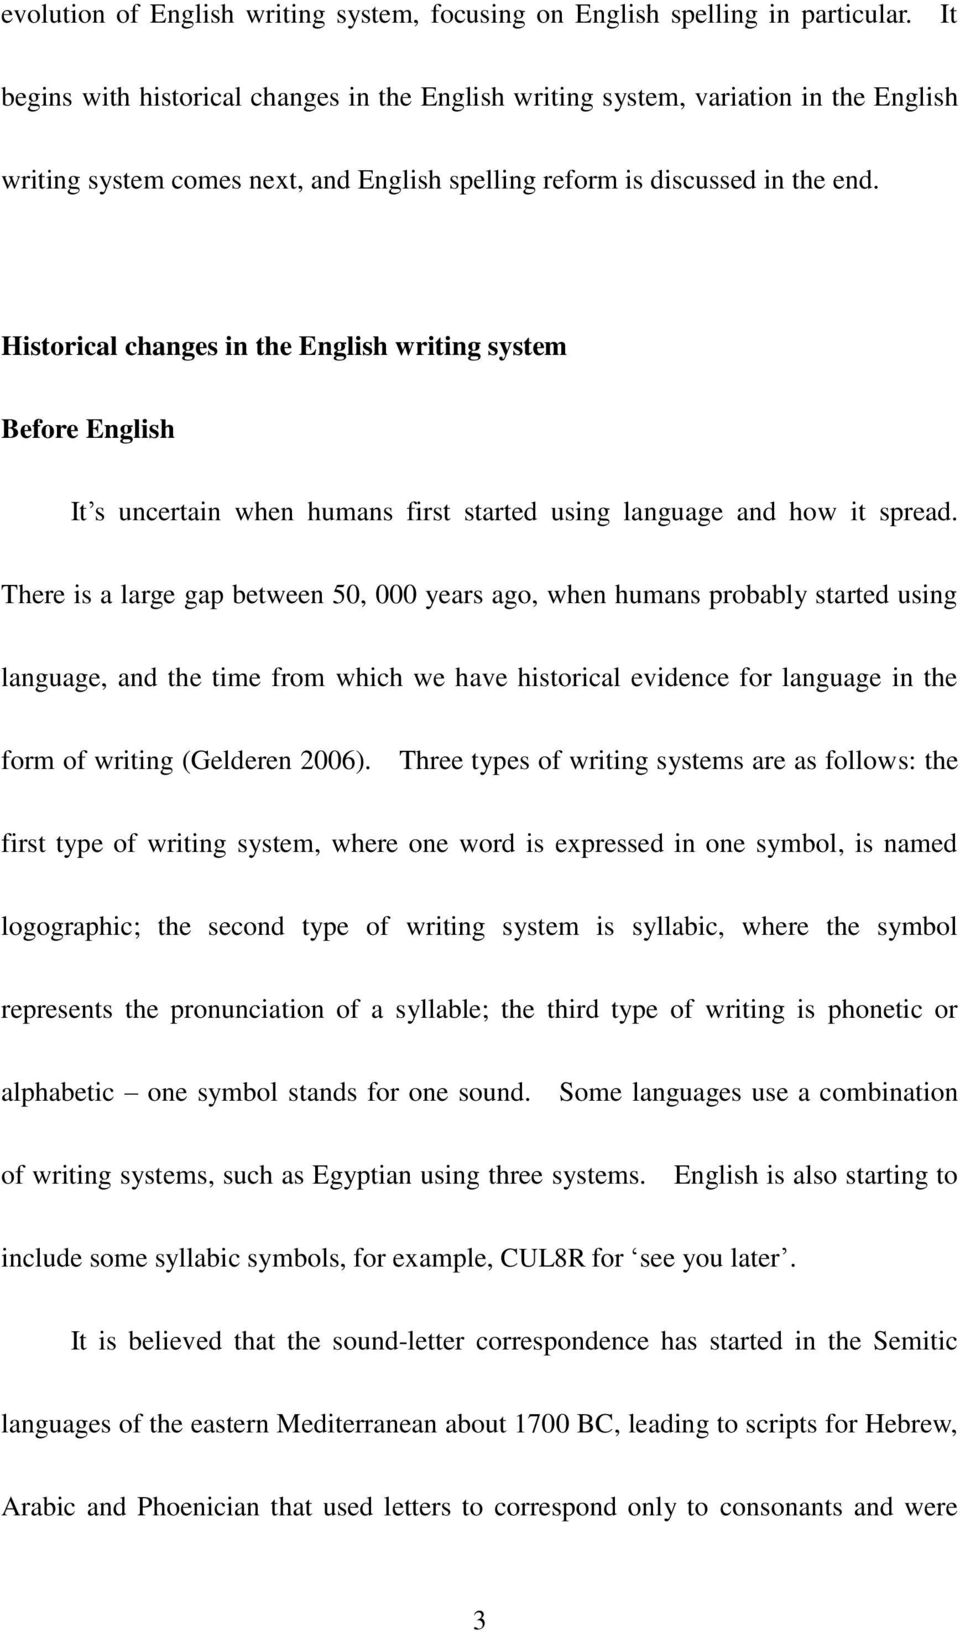 The Evolution Of English Writing System A Review Of Pdf